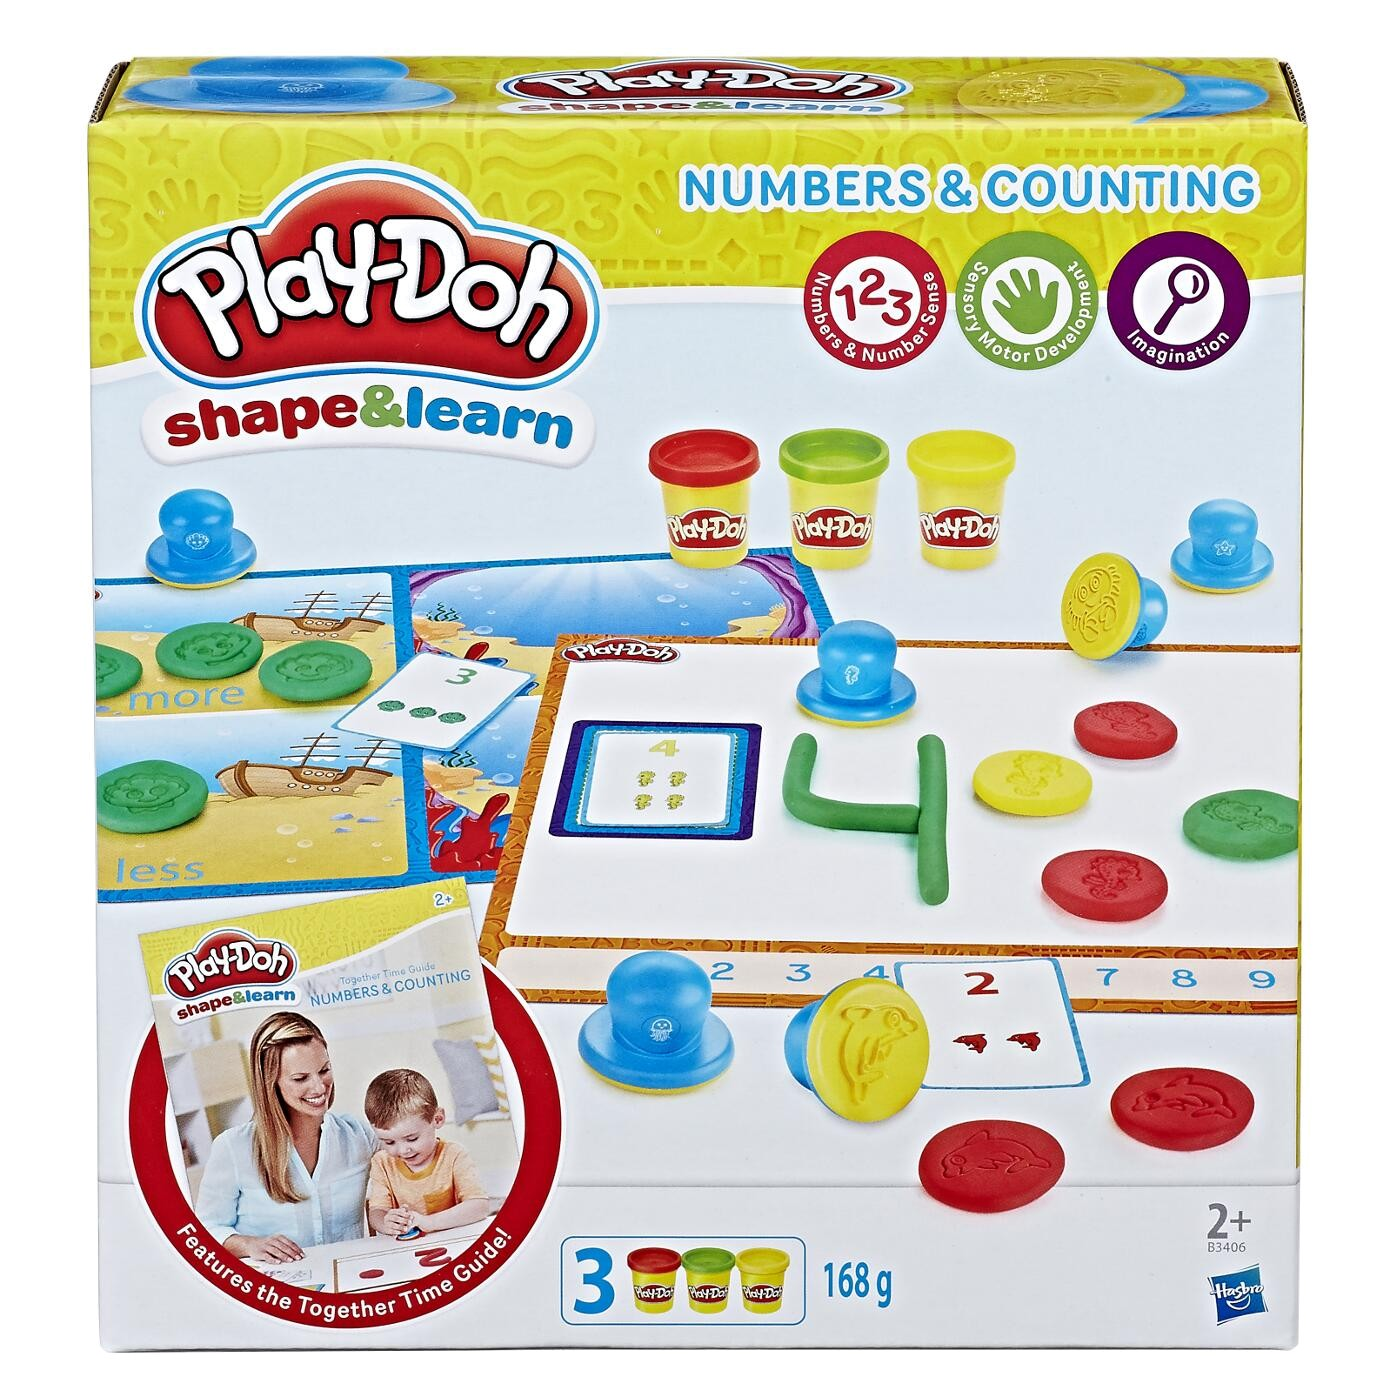 PLAY DOH NUMBER & COUNTING